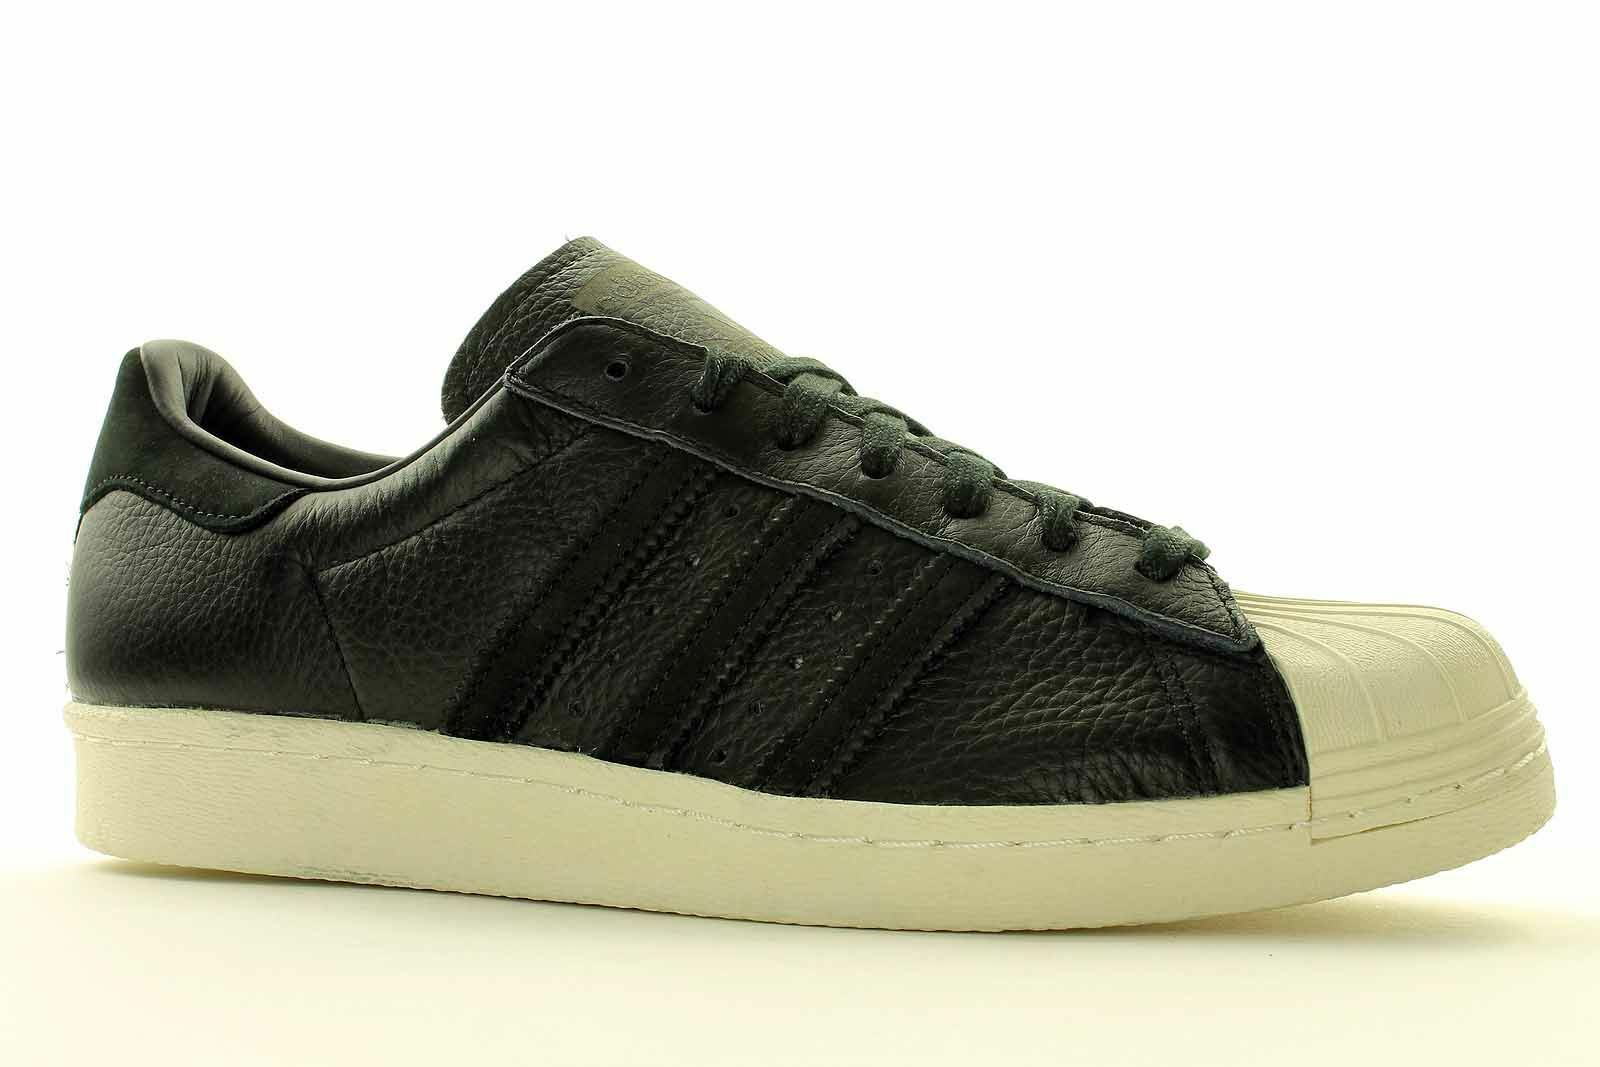 adidas Superstar 80's BB5945  ~Originals~UK 4.5 to 12 Only